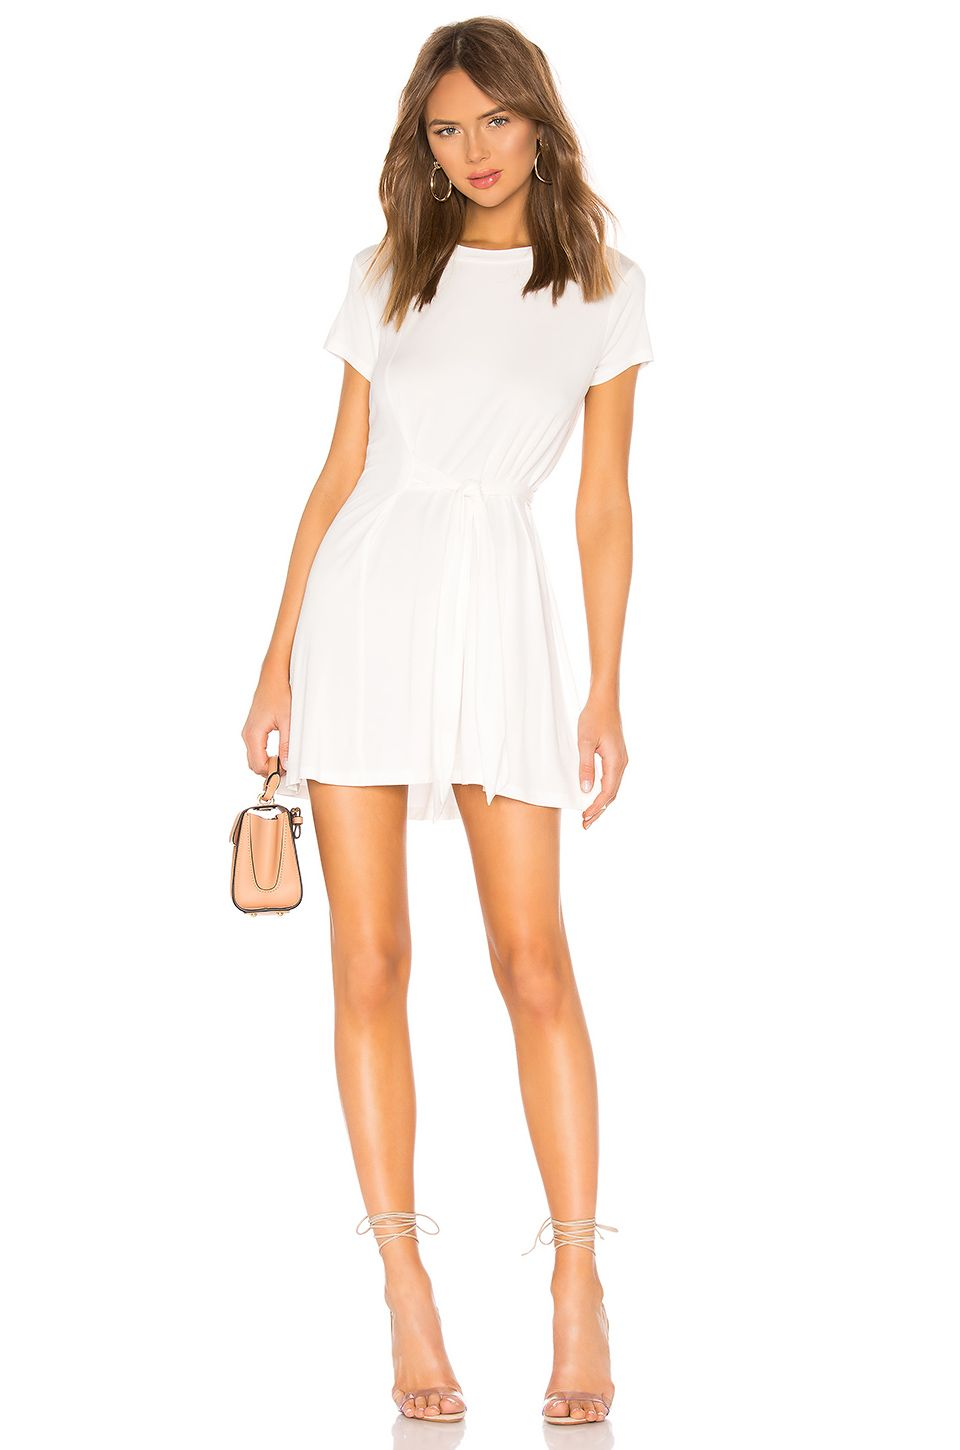 Https Www Revolve Com Lacademie Cassidy Dress Dp Lcde Wd250 D Womens Page 1 Lc 73 Itrownum 25 Itcurrpage 1 Fashion Clothes Women Sophisticated Dress Dresses